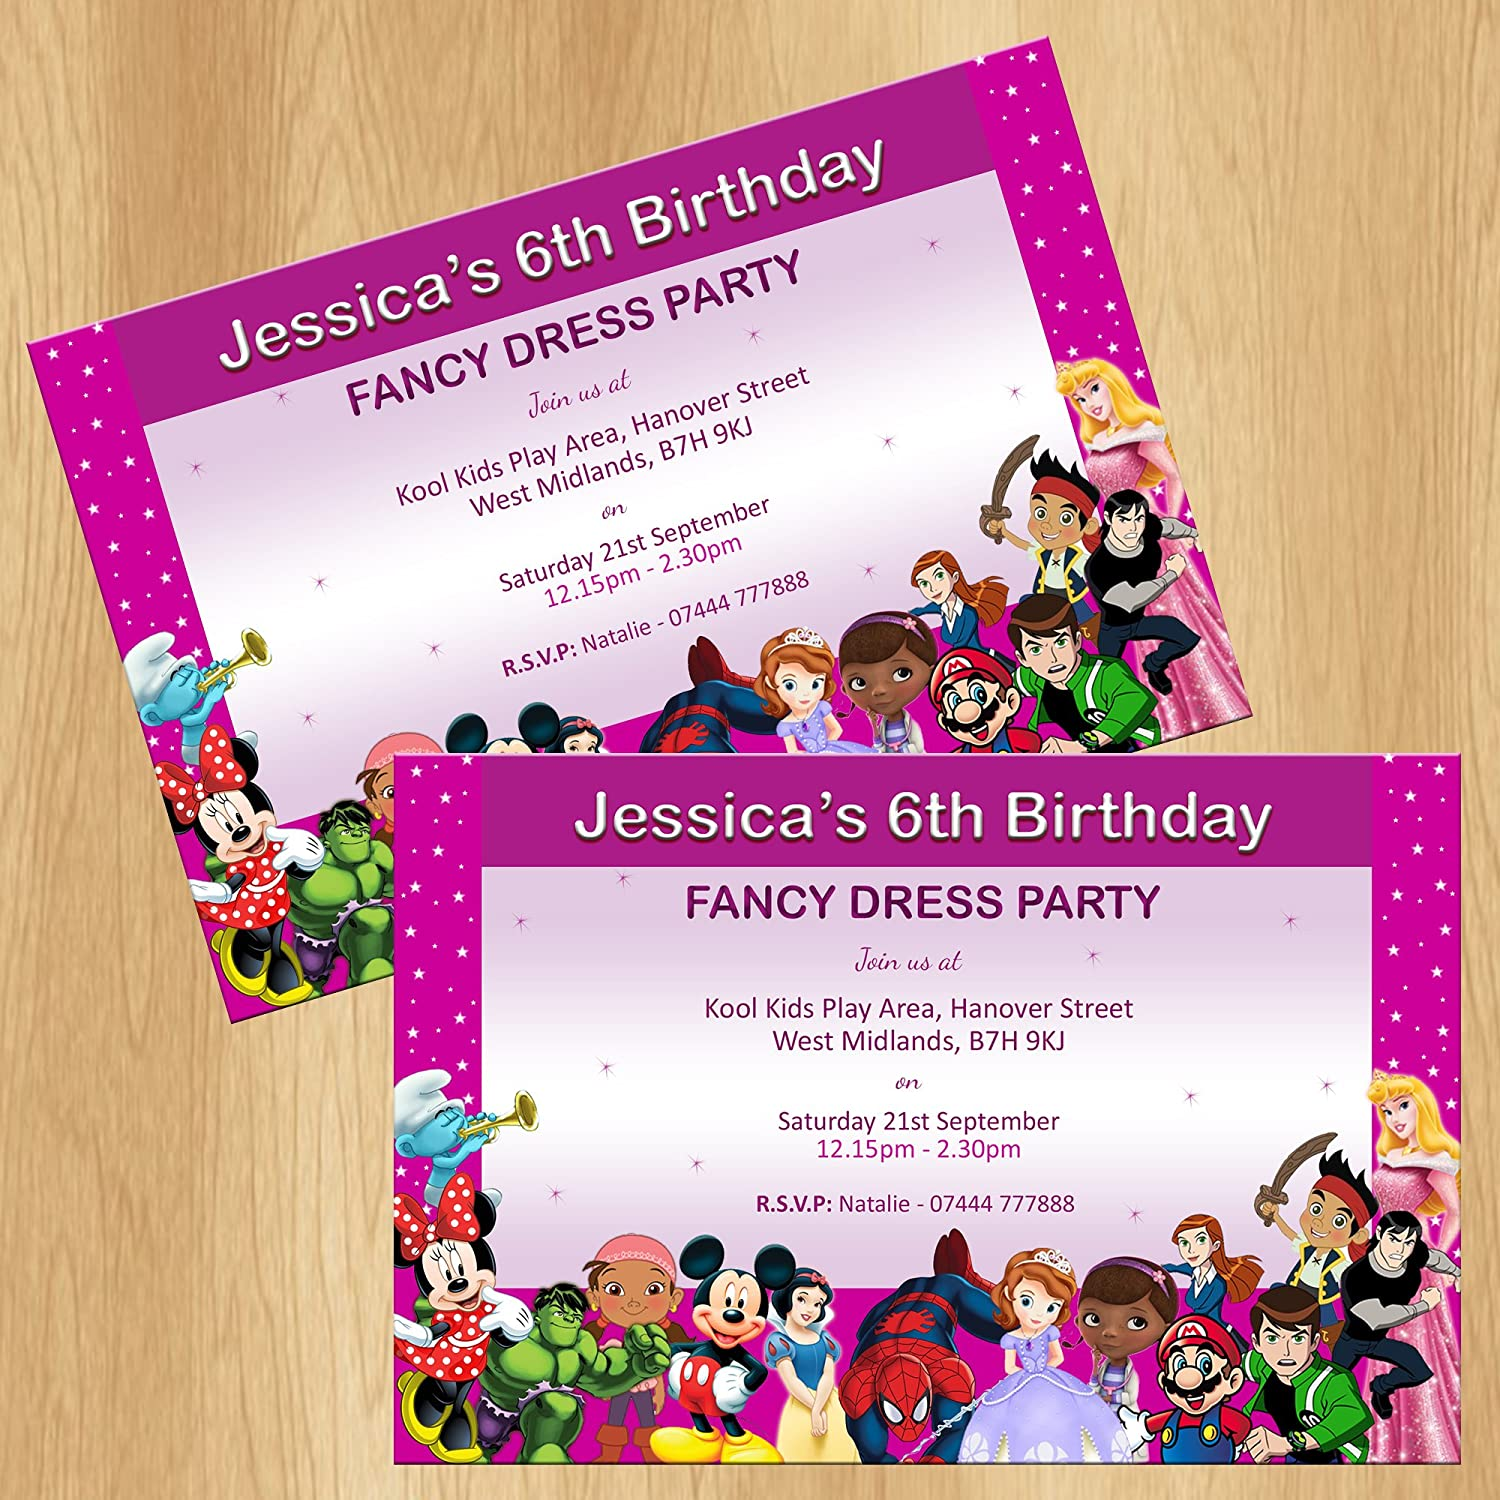 Fancy Dress Party Invitations Personalised Invites: Amazon.co.uk ...